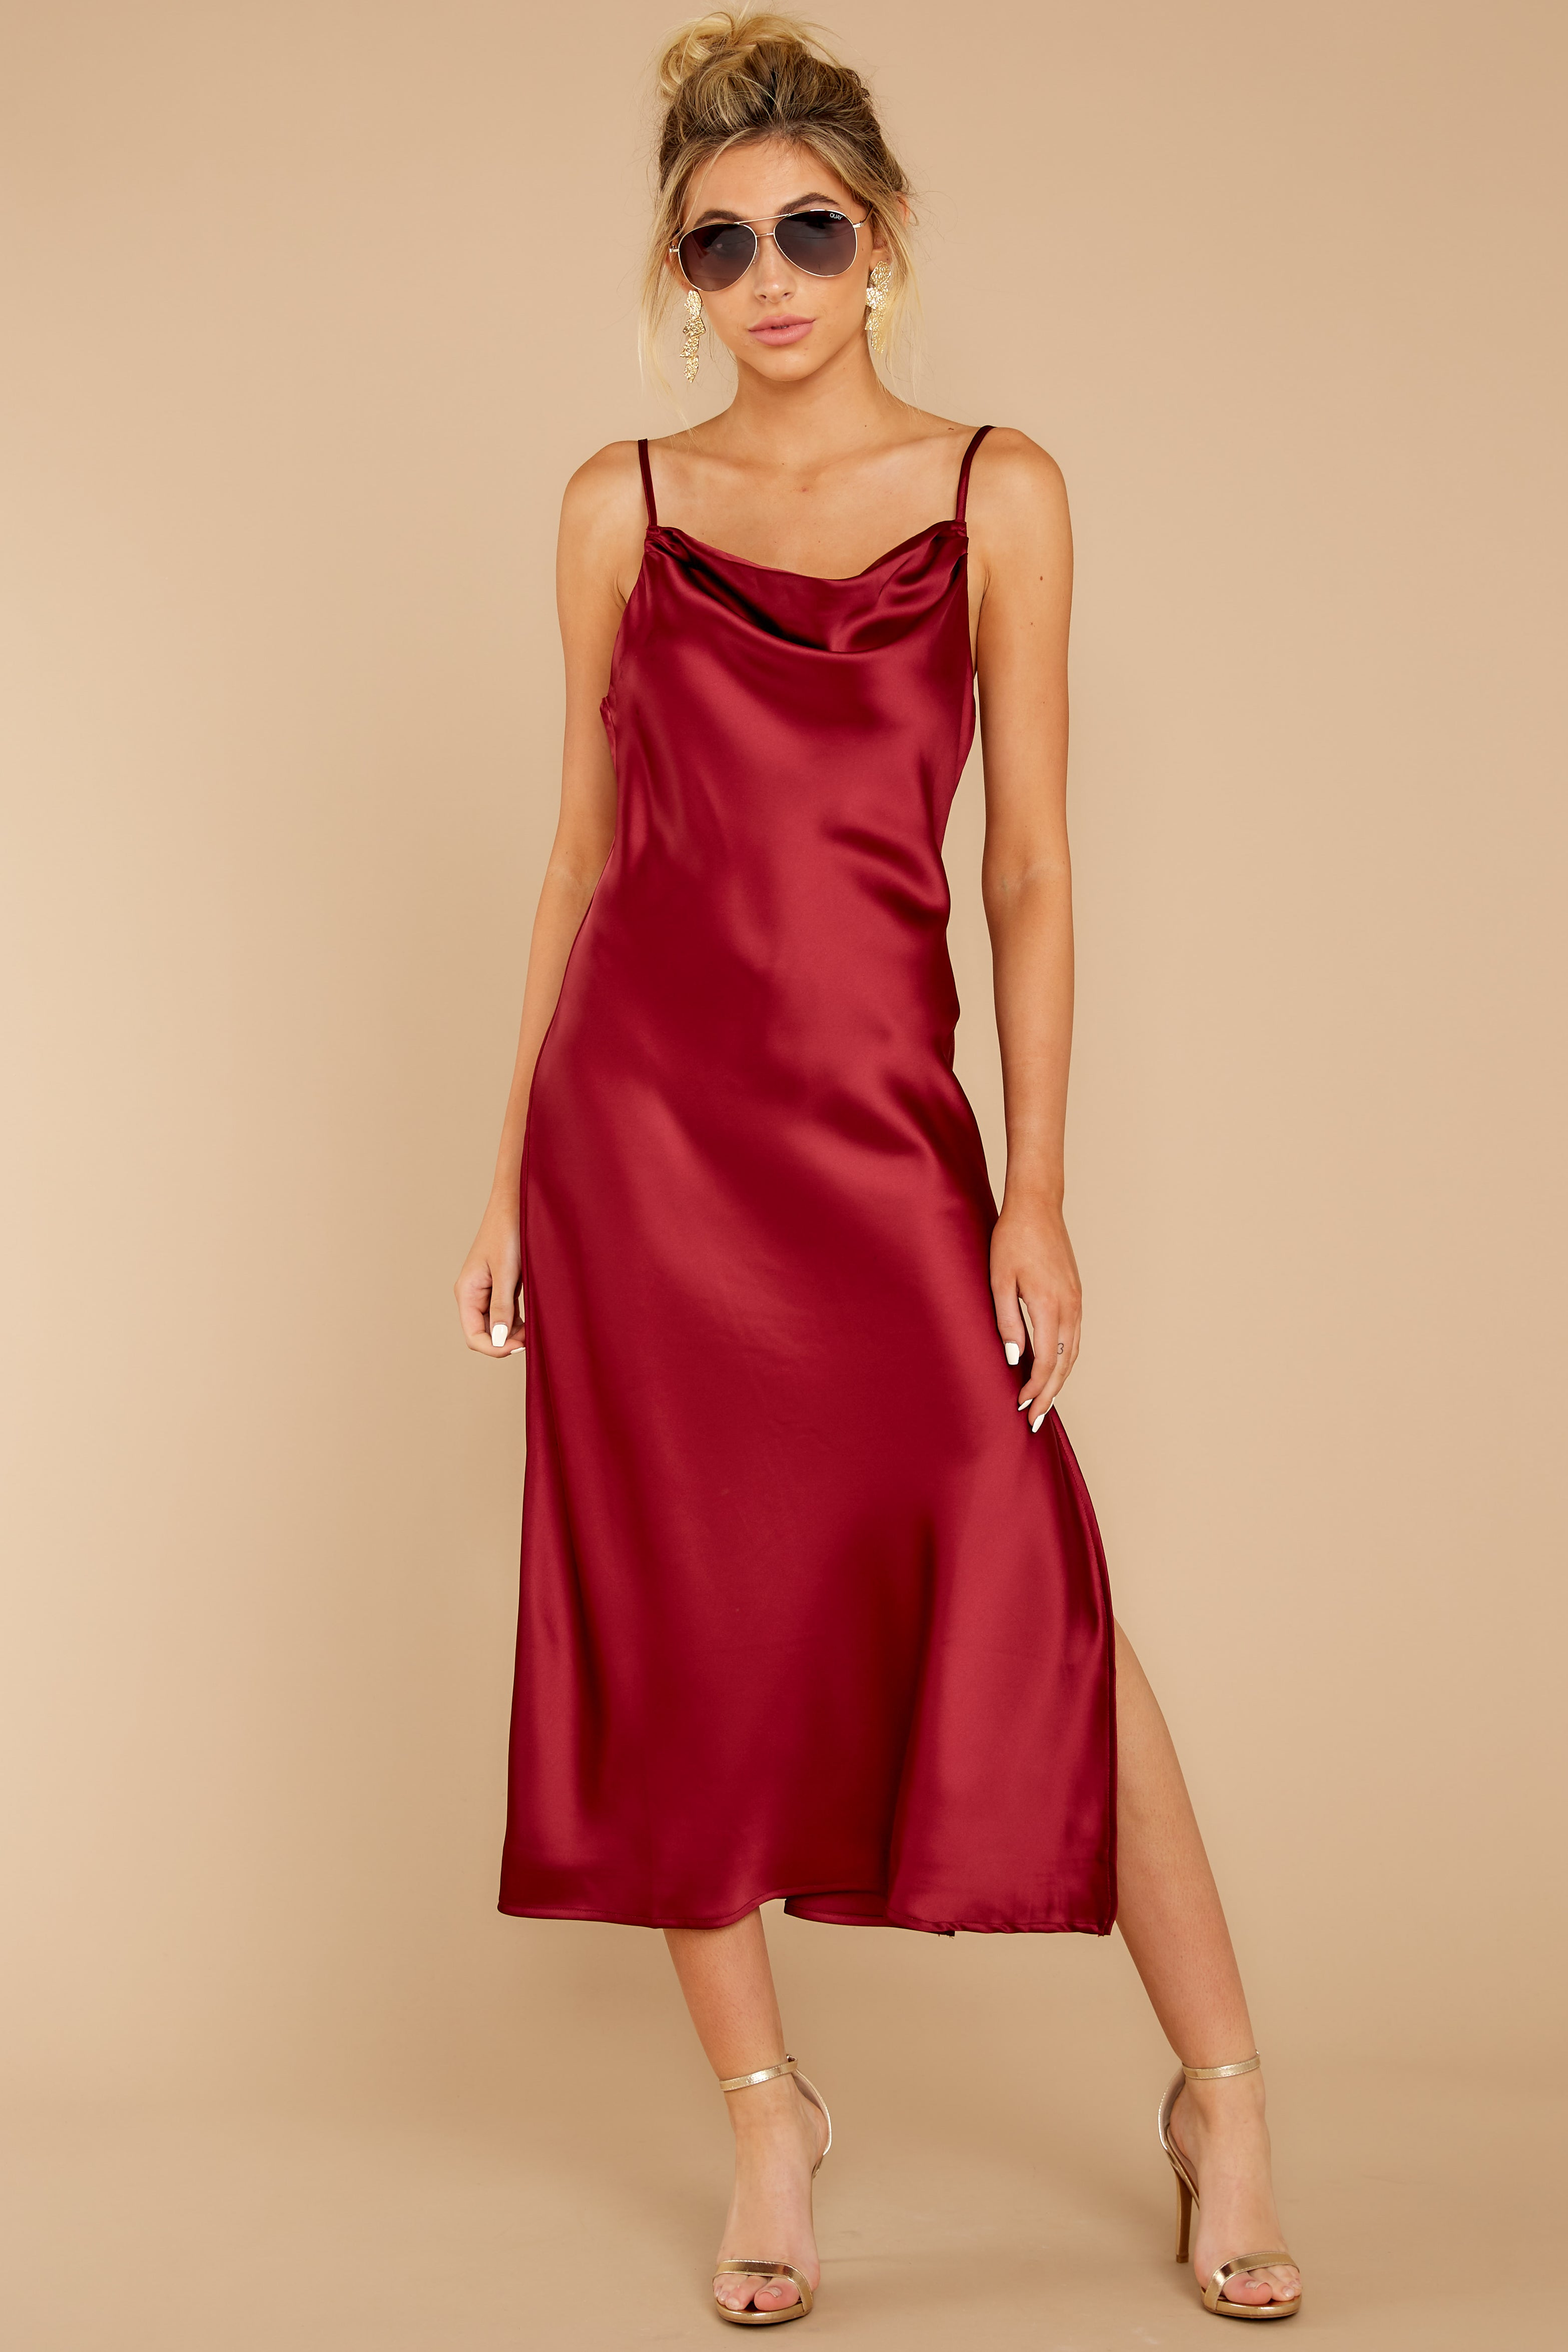 Just One Look Ruby Red Midi Dress